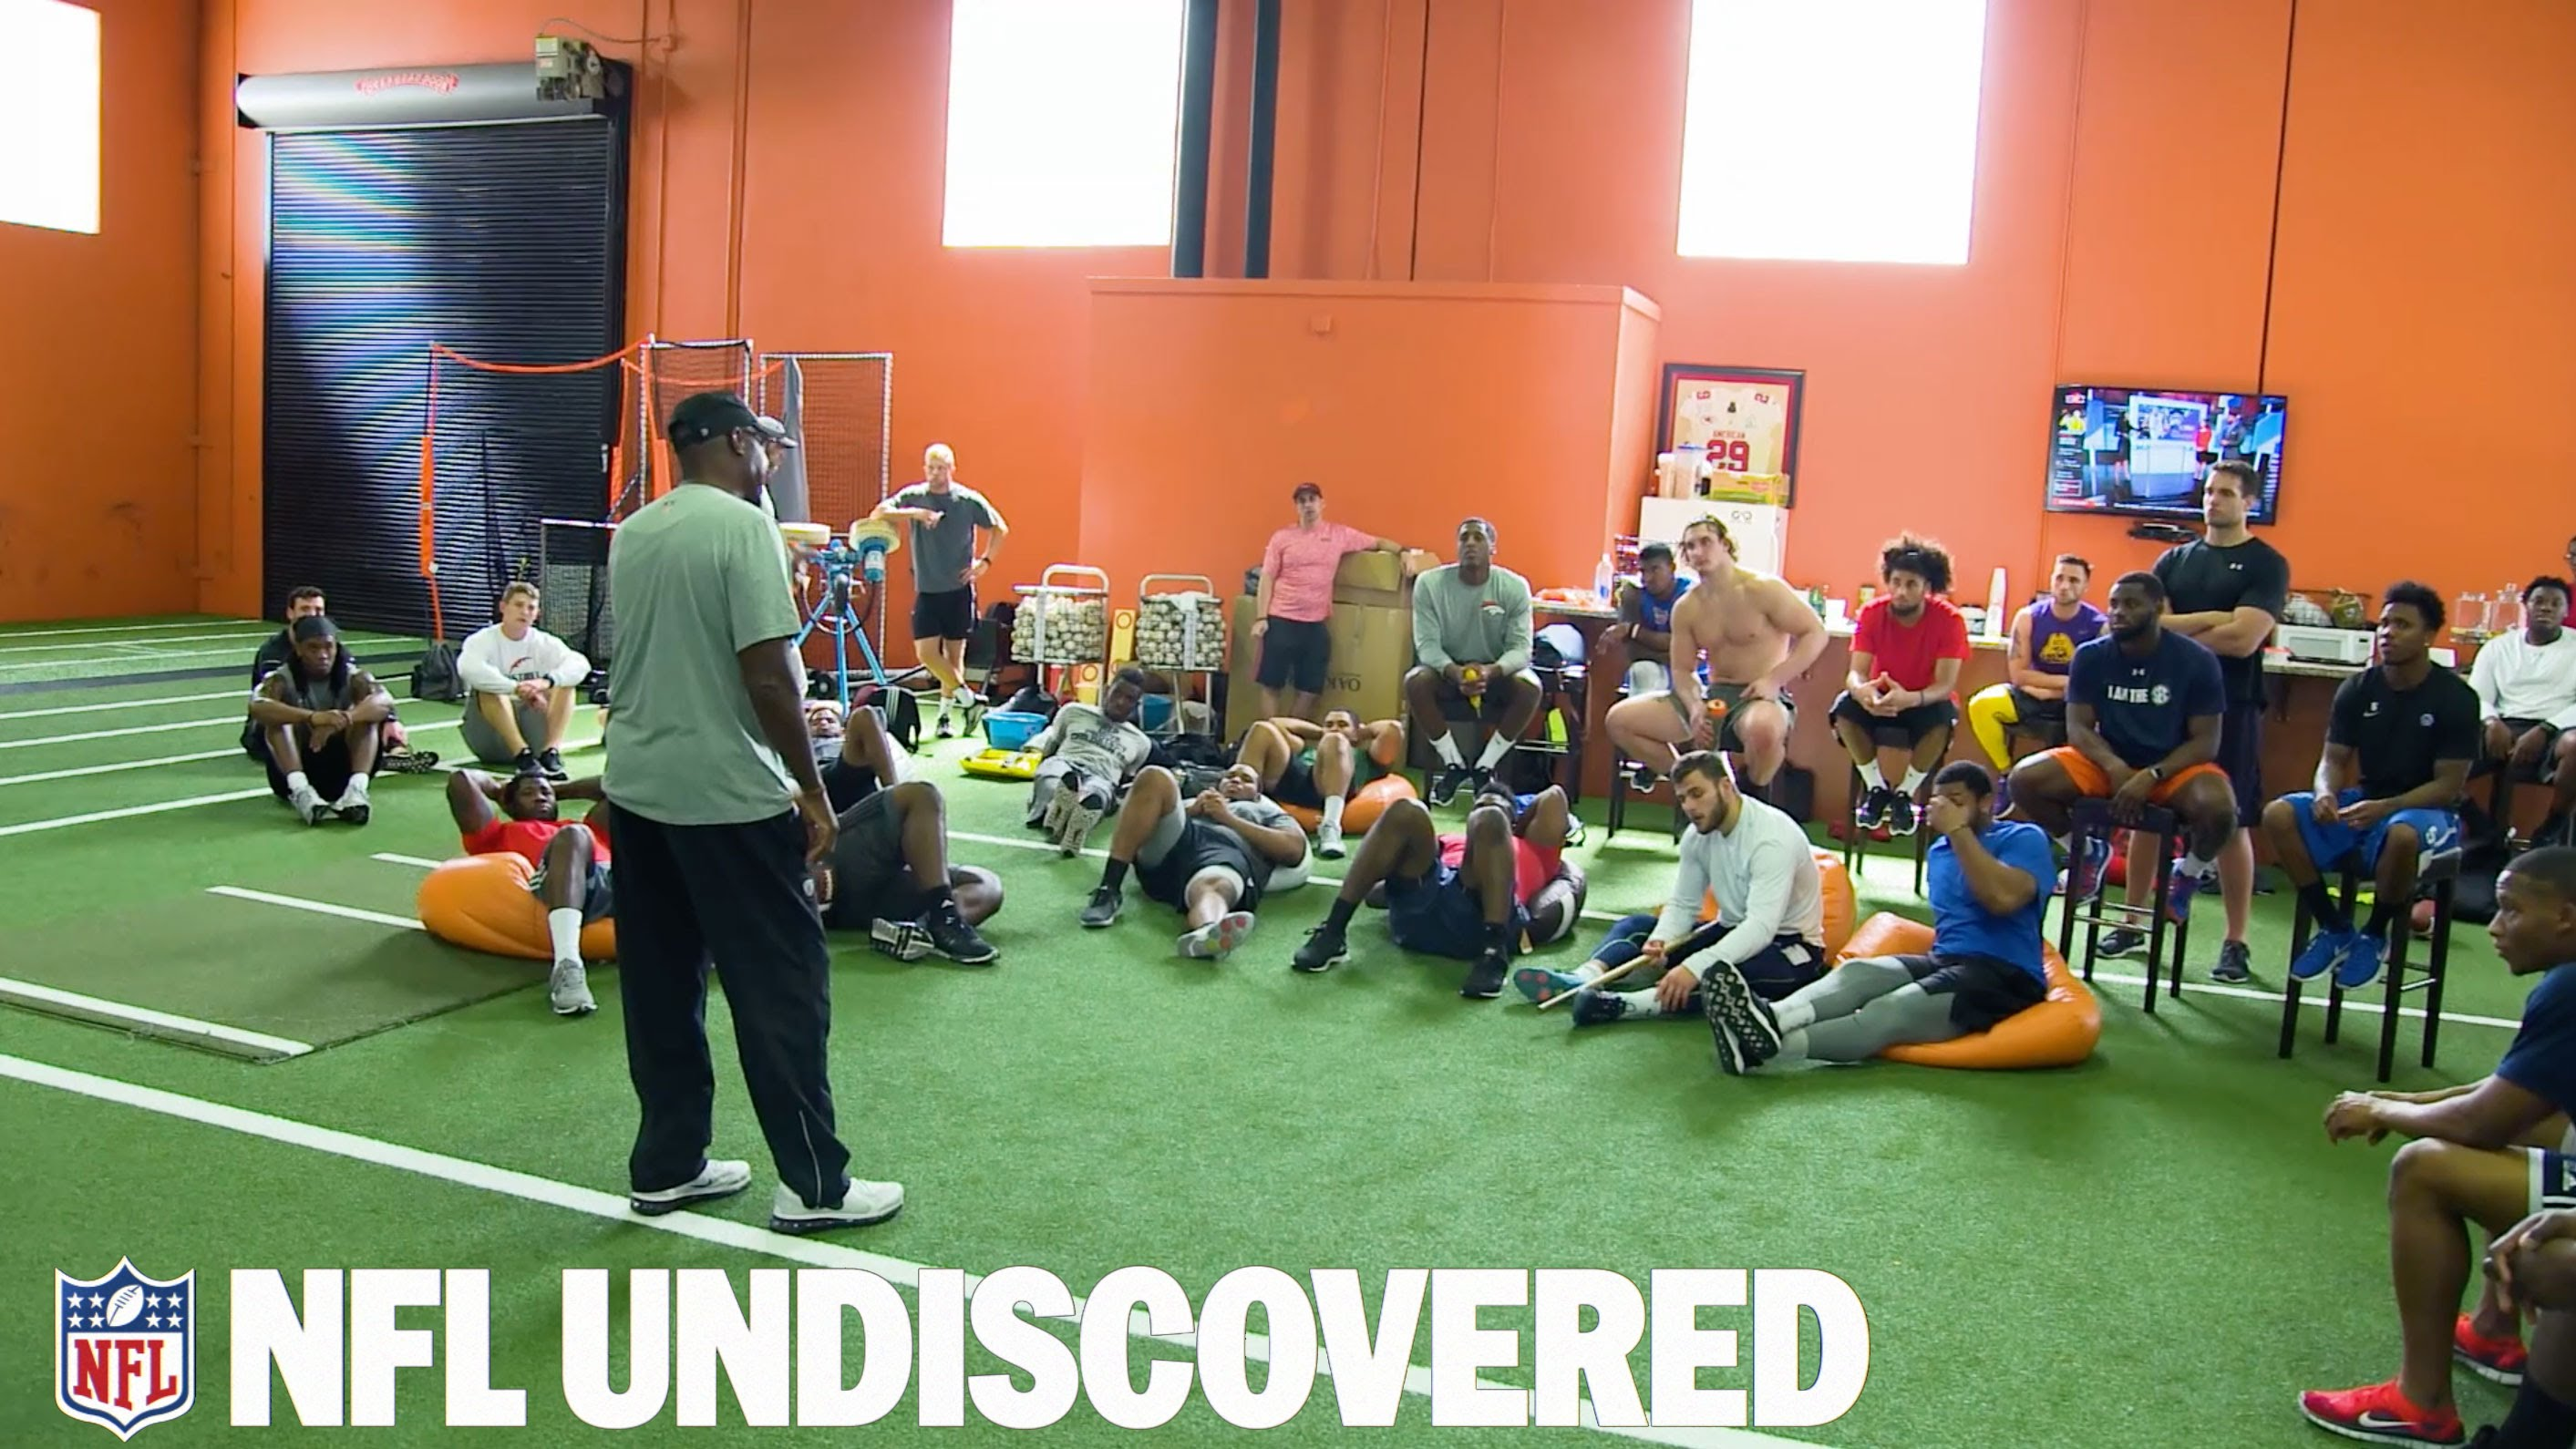 NFL Undiscovered – Episode 3 Recap: The Harsh Realities of the NFL